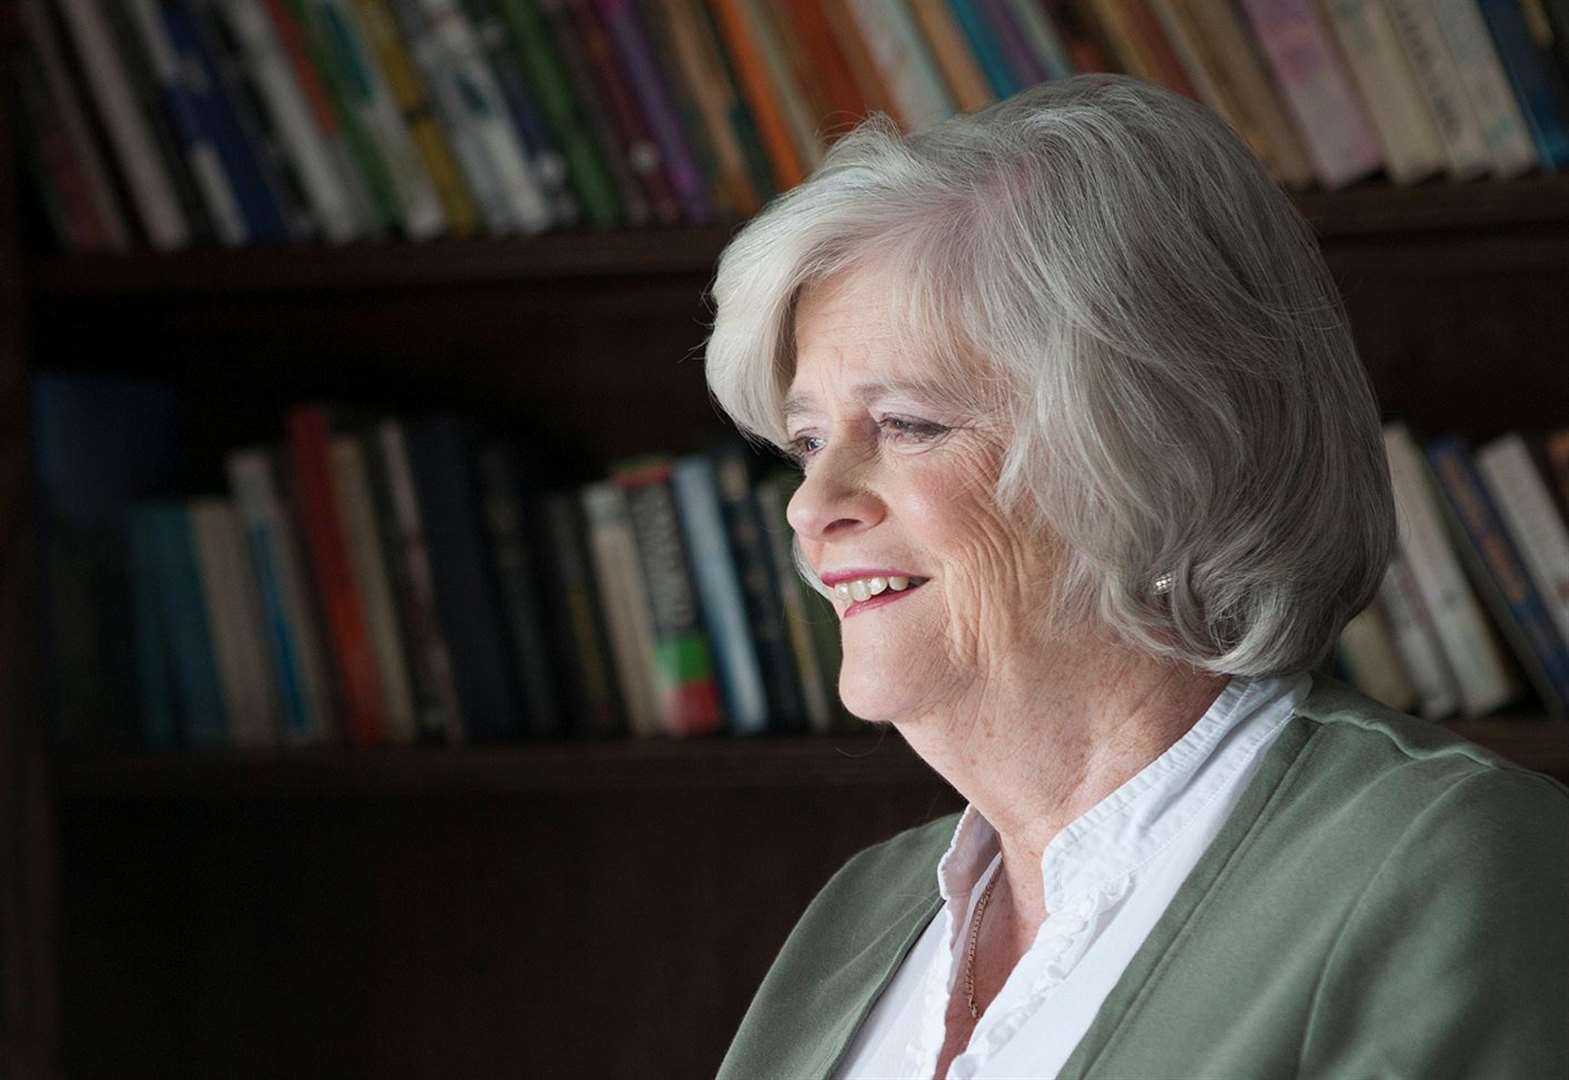 Widdecombe 'extremely sad' to resign from conservative association